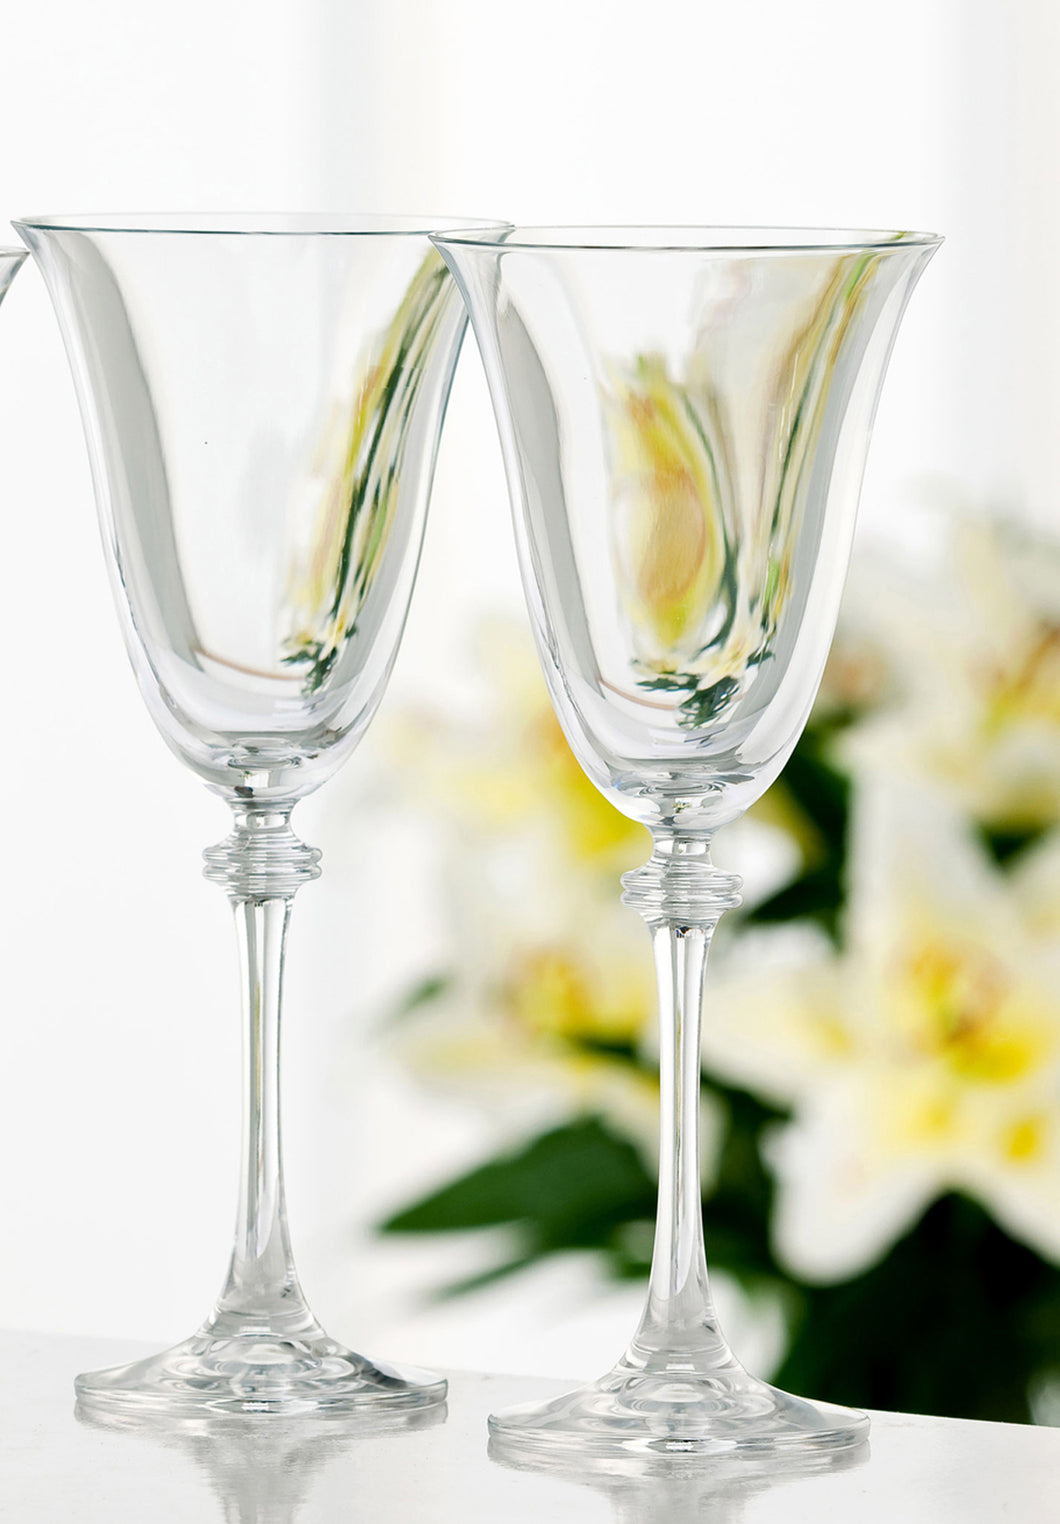 Galway Crystal - 2 Classic Goblet Liberty Glasses